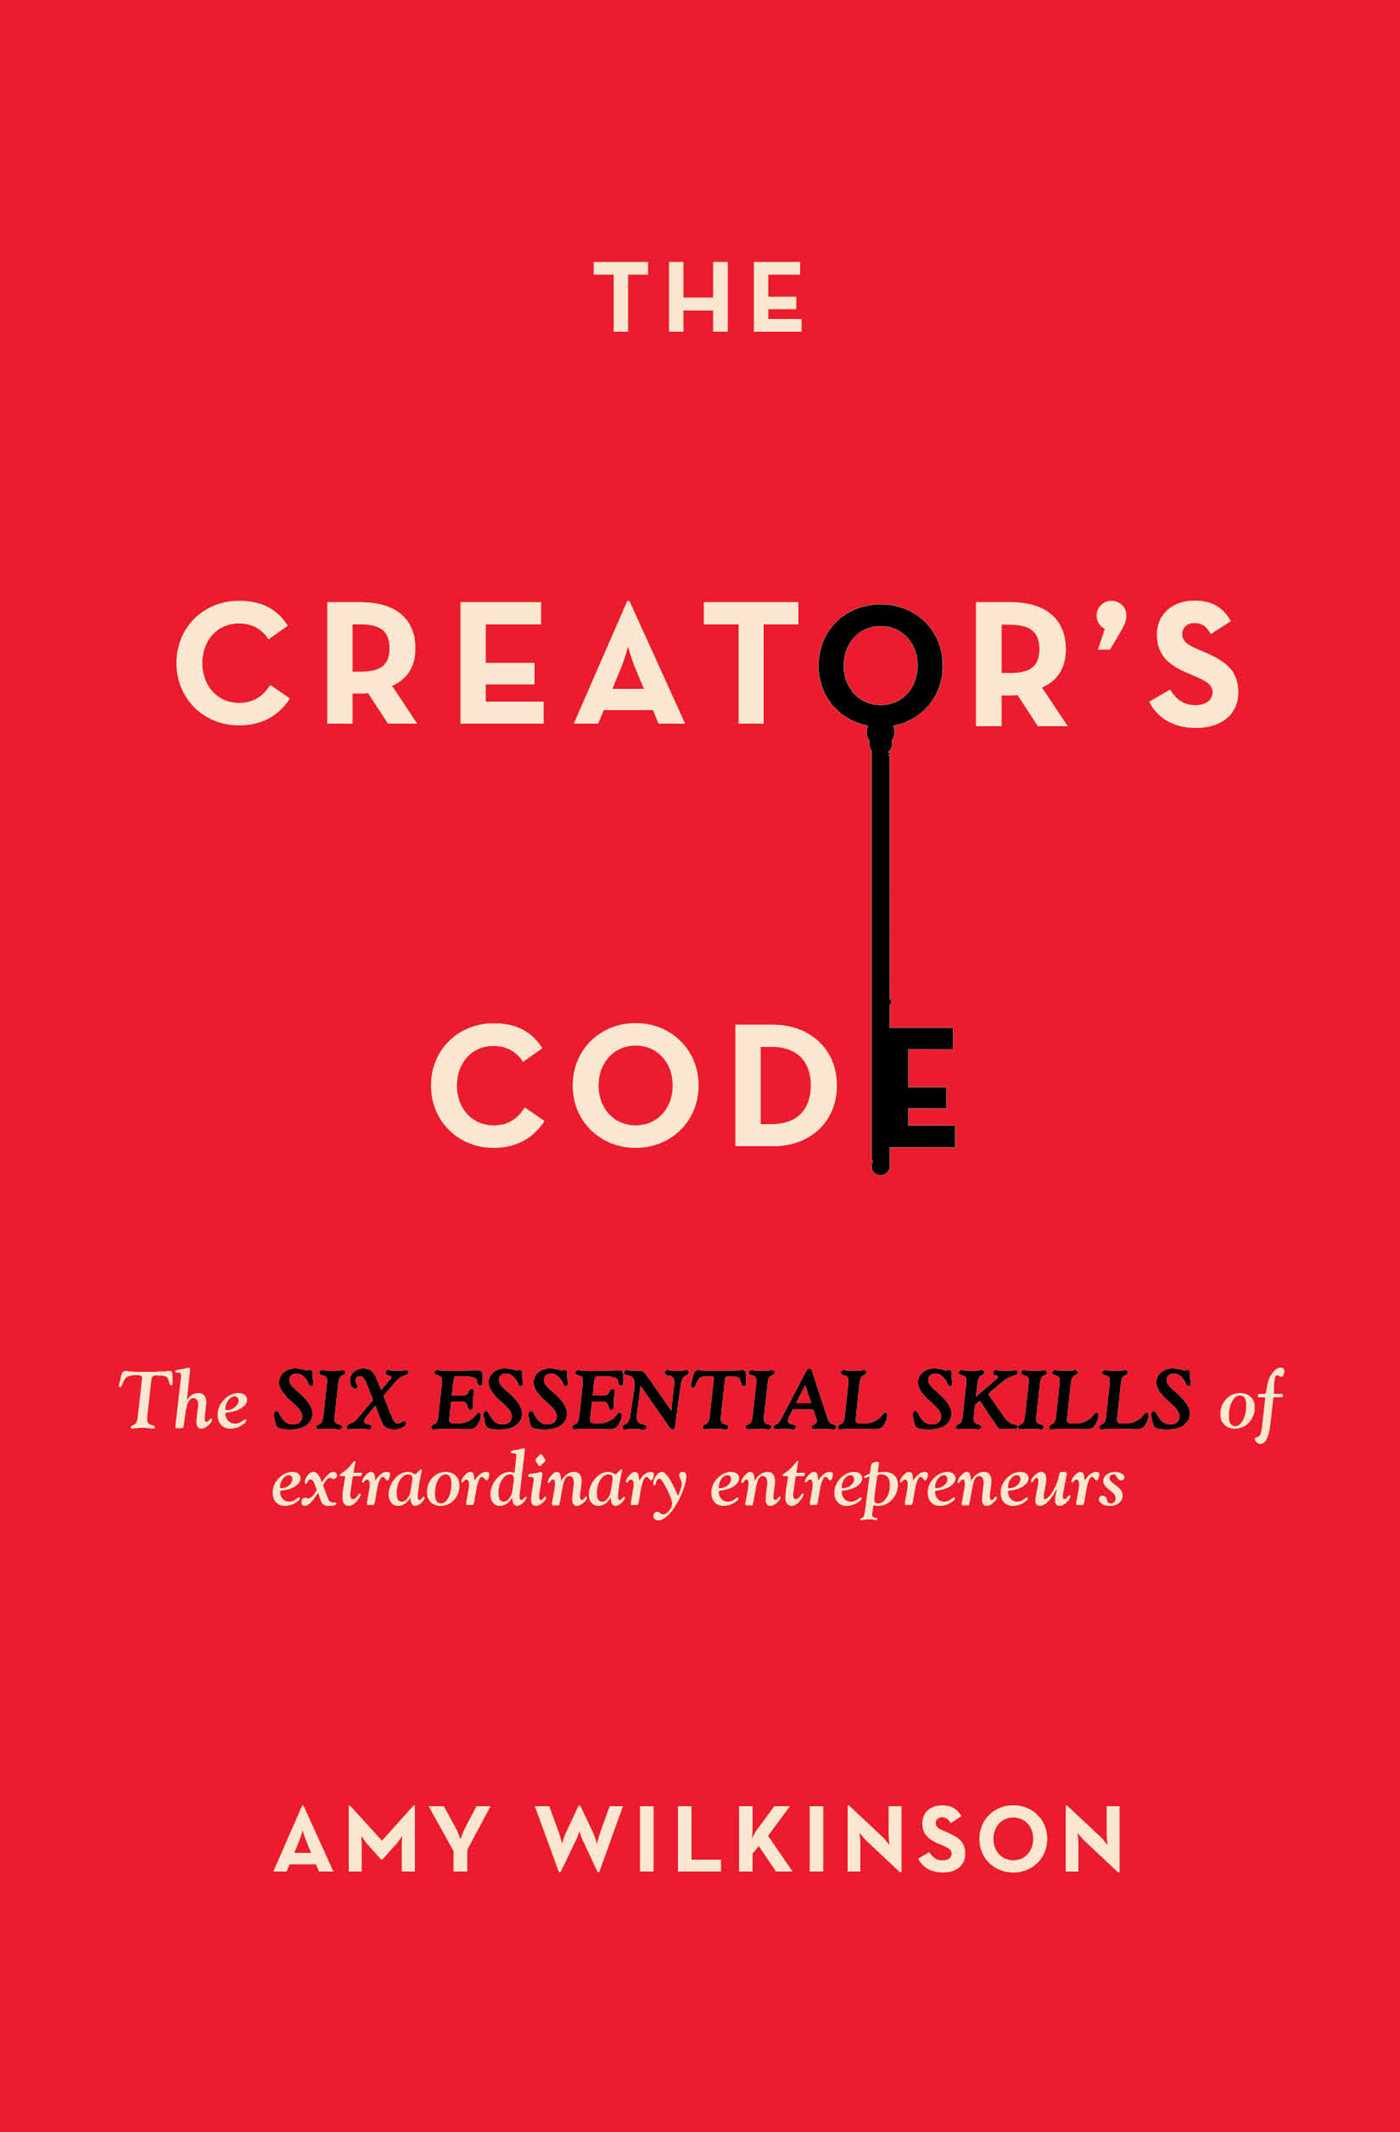 The creators code book by amy wilkinson official publisher page book cover image jpg the creators code fandeluxe Image collections